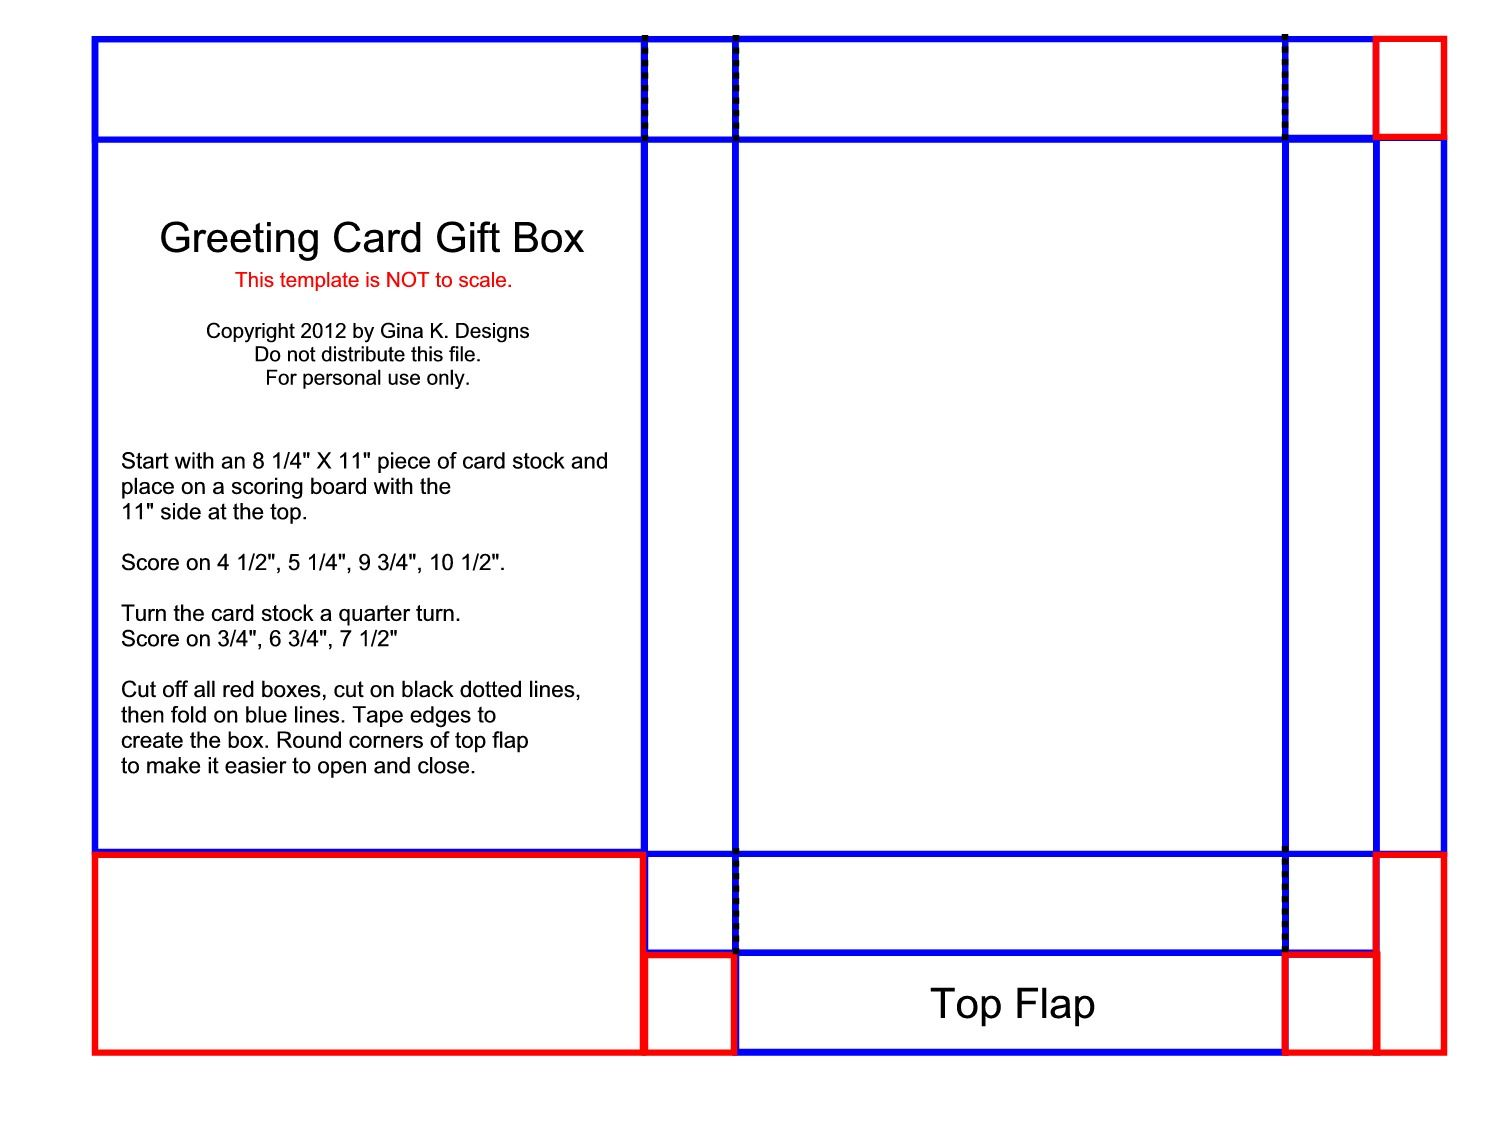 Greeting Card Gift Box Template  Gkdesigns  CardsStamp Tv